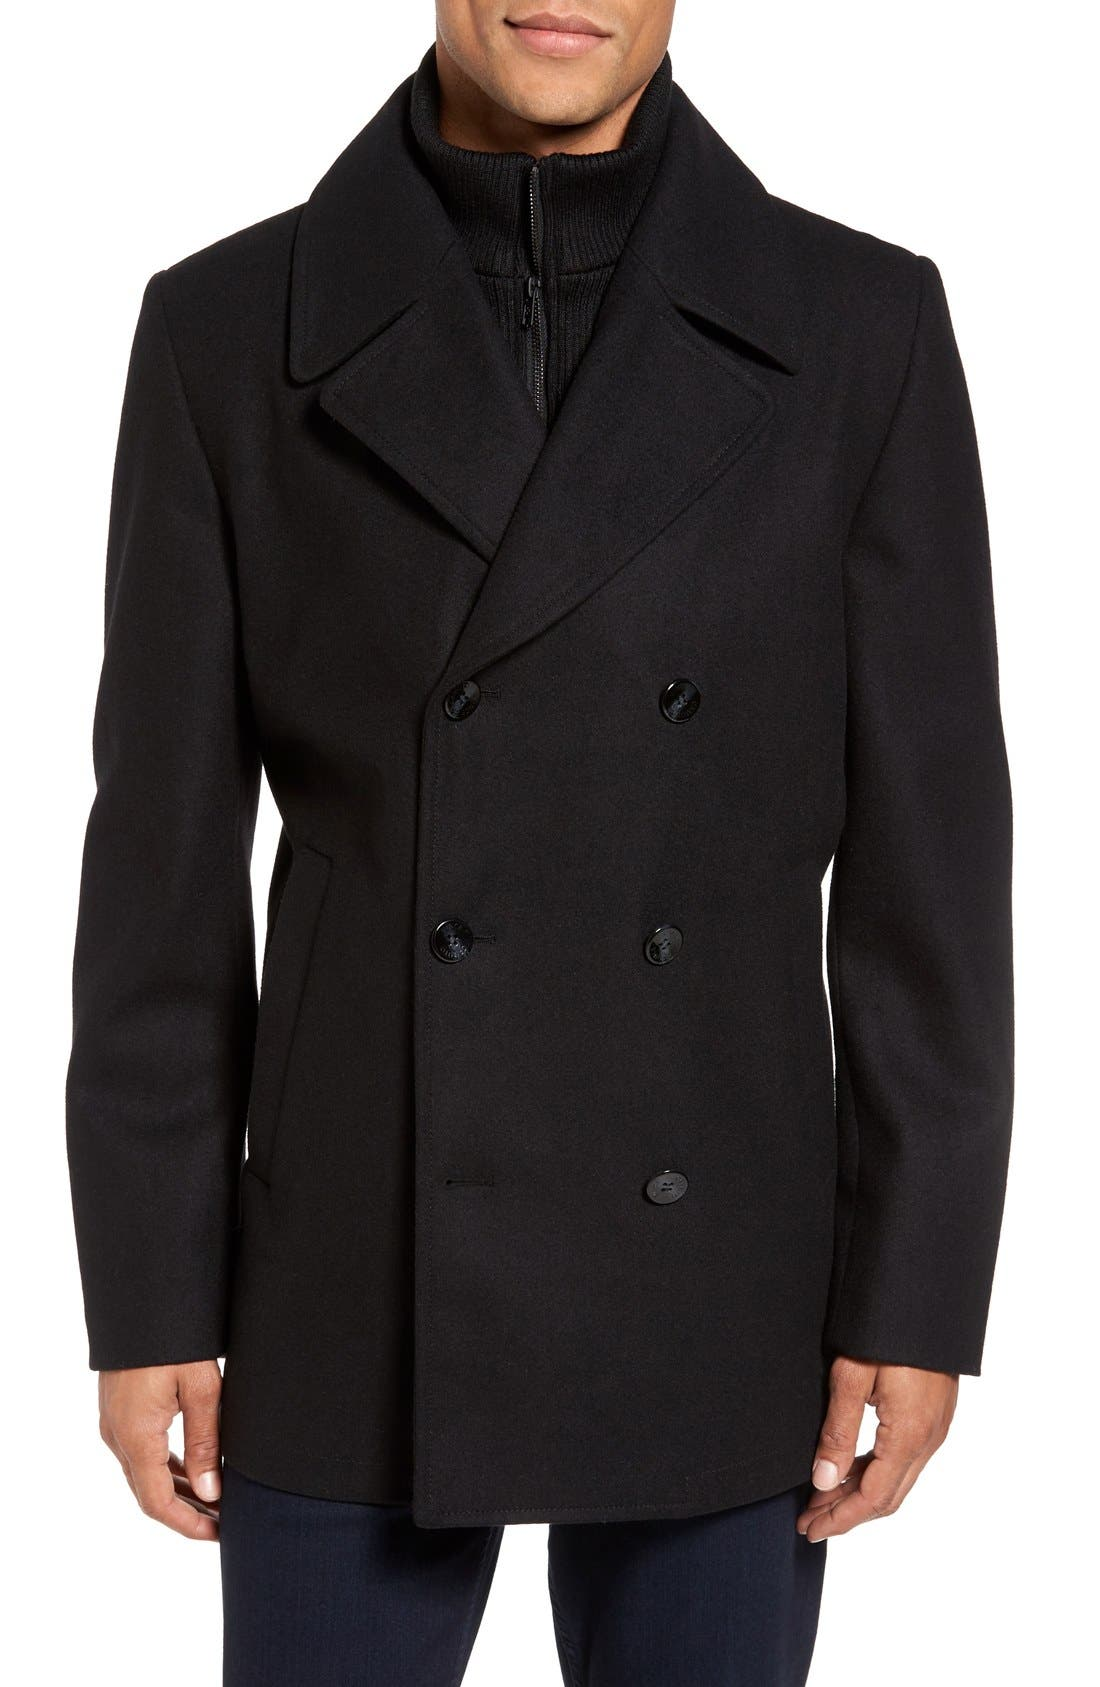 Alternate Image 1 Selected - Vince Camuto Dock Peacoat